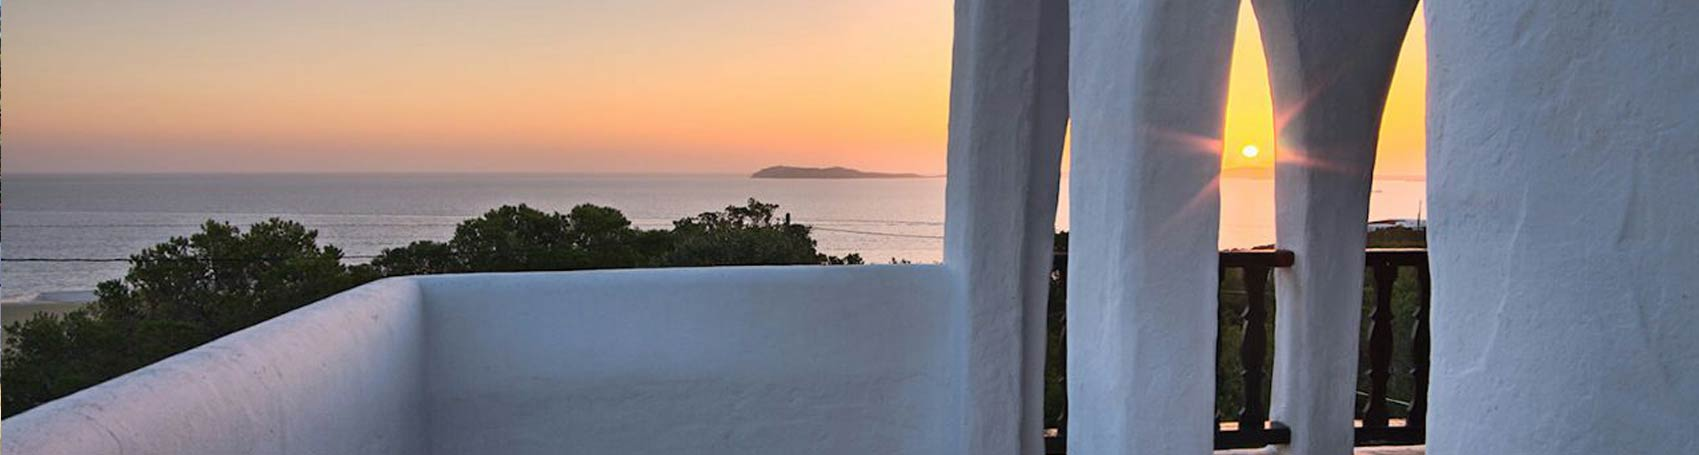 rental of private luxury villas in Ibiza. VIP services in Ibiza. Consulting Services Ibiza